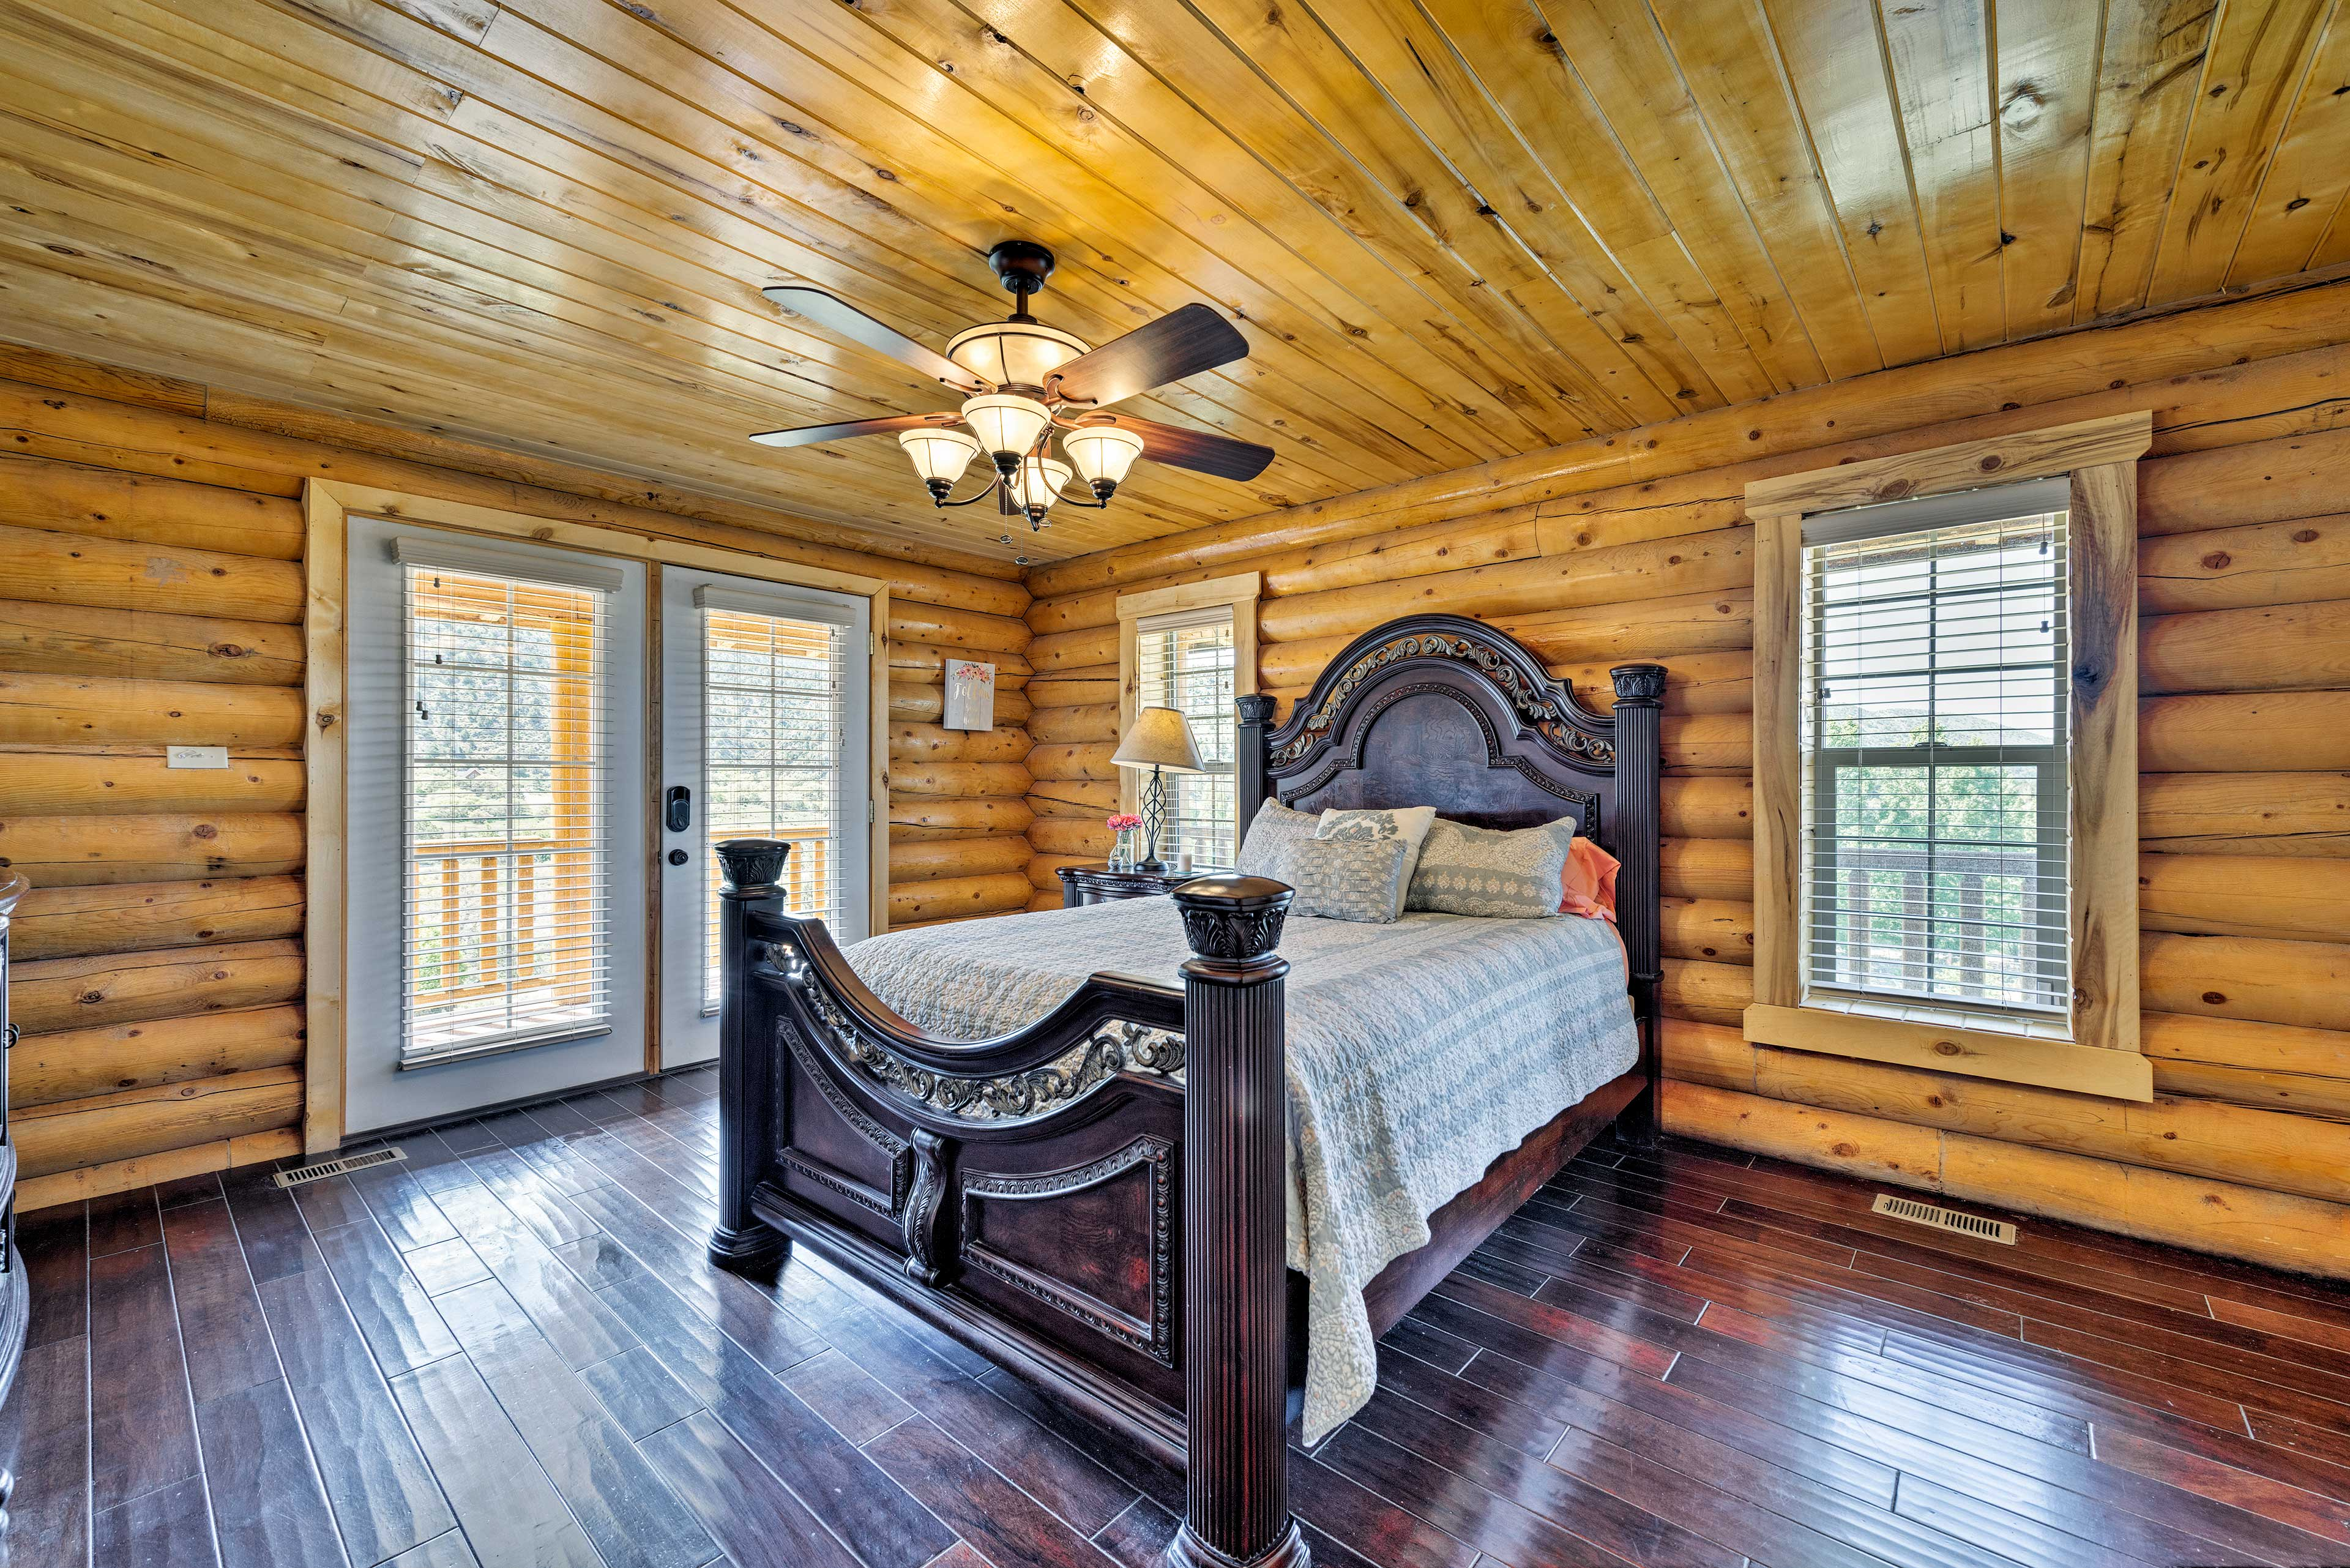 The master bedroom hosts a queen bed for 2.